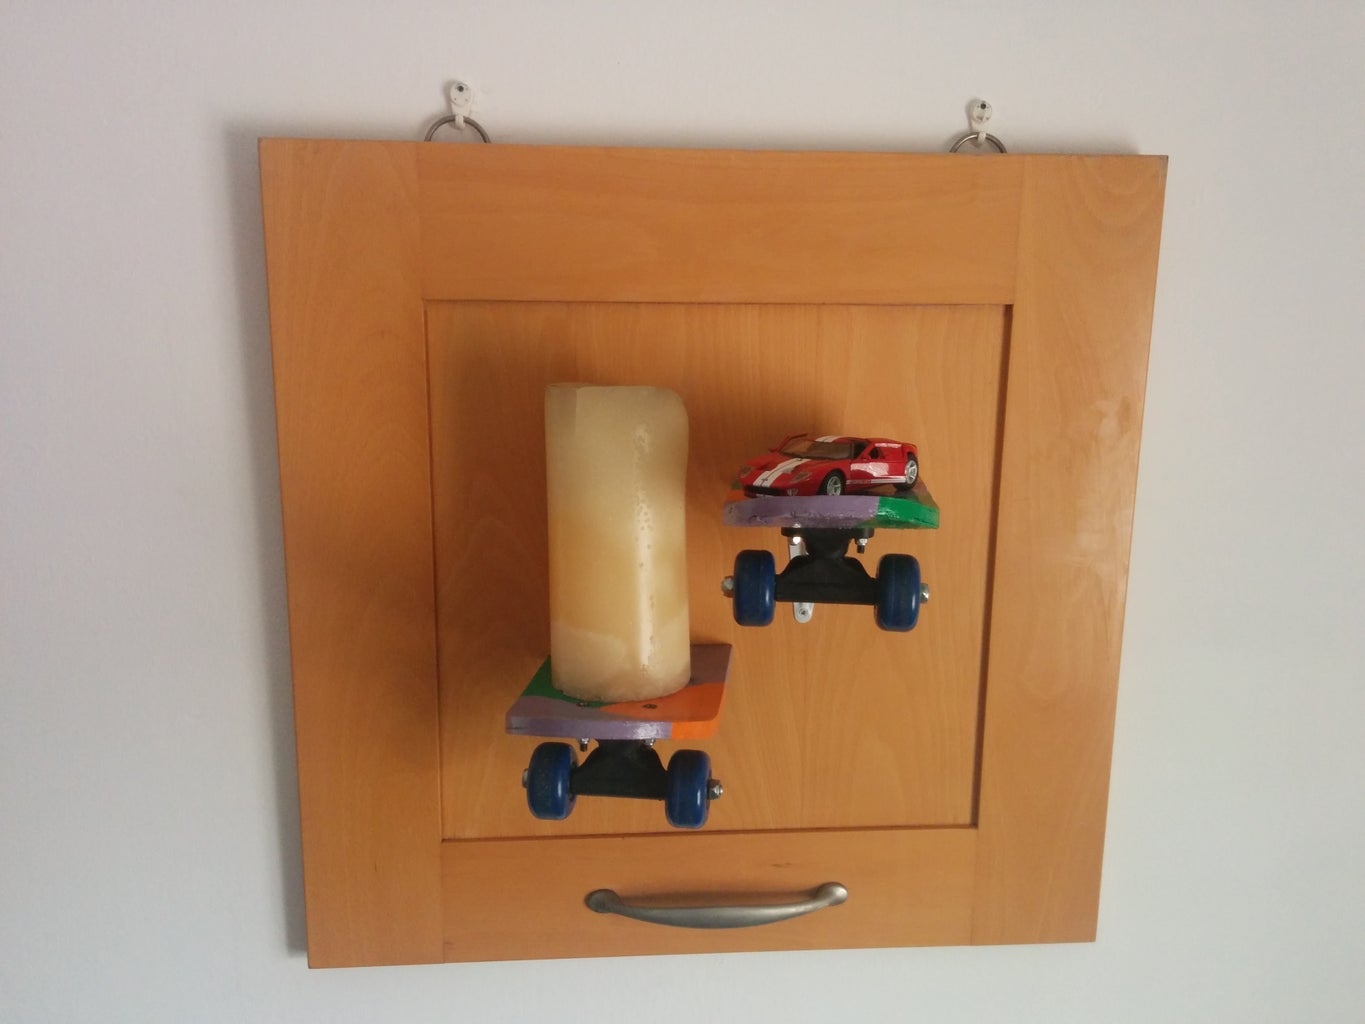 Skateboard Recycled Into Shelves